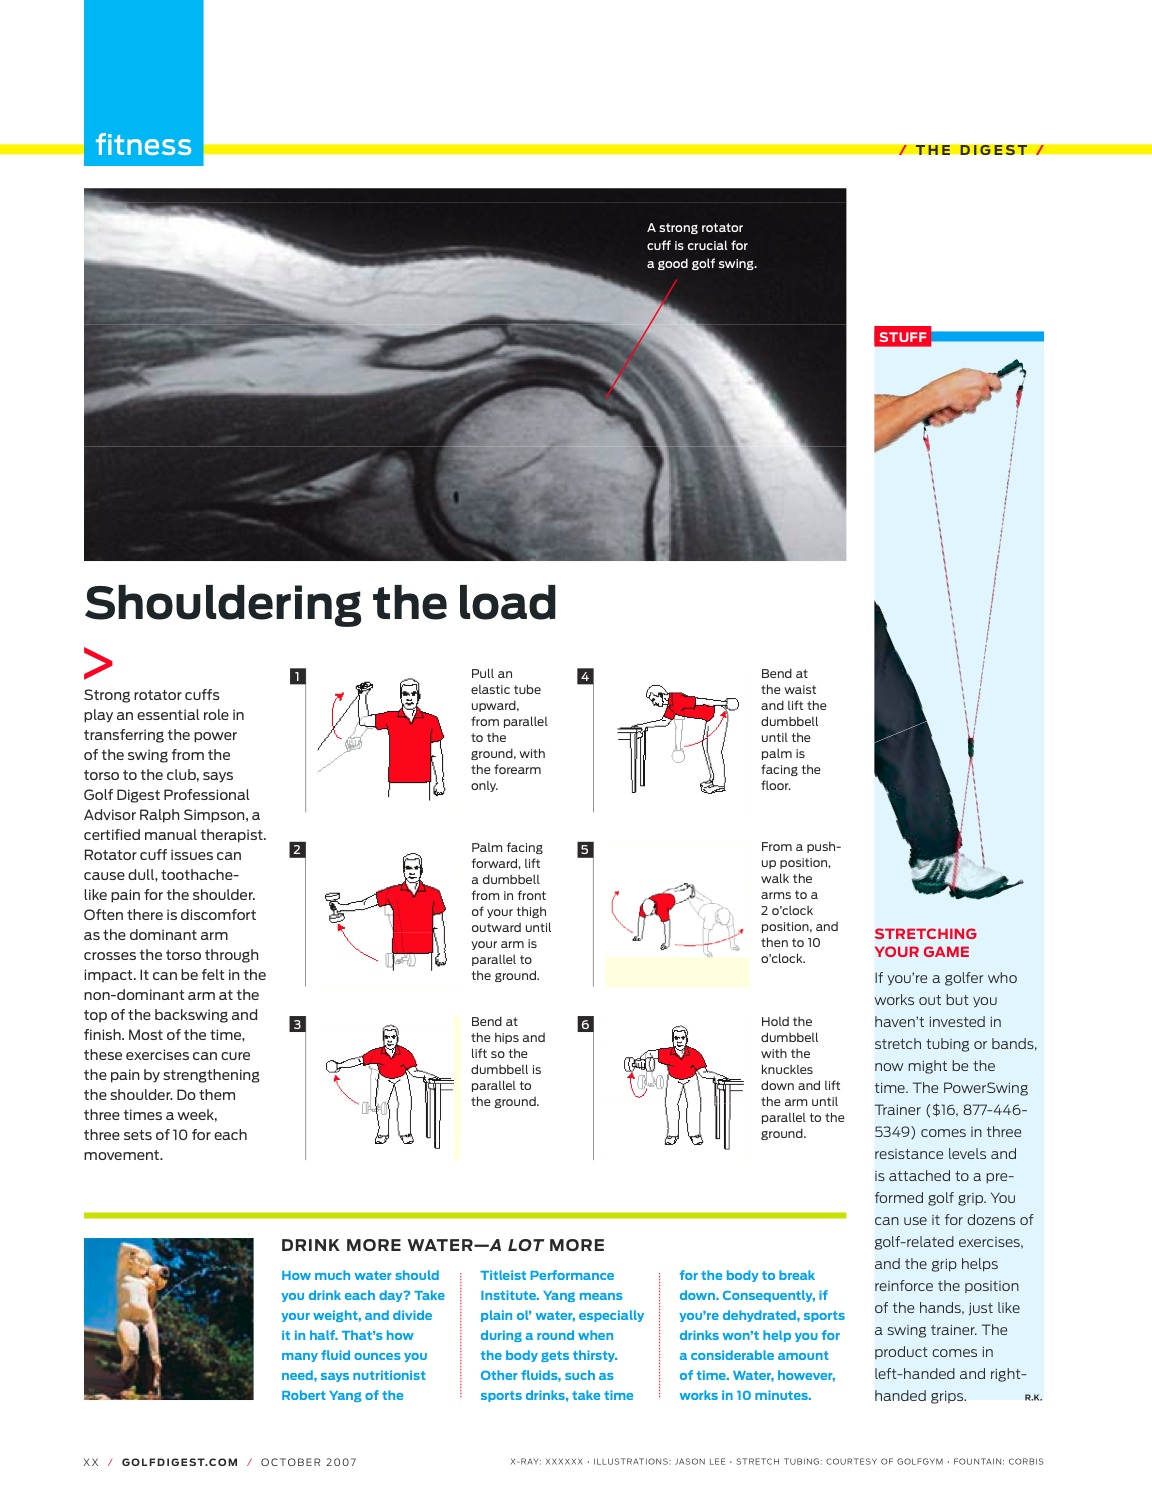 Fitness-Article-shouldering-the-load.jpg